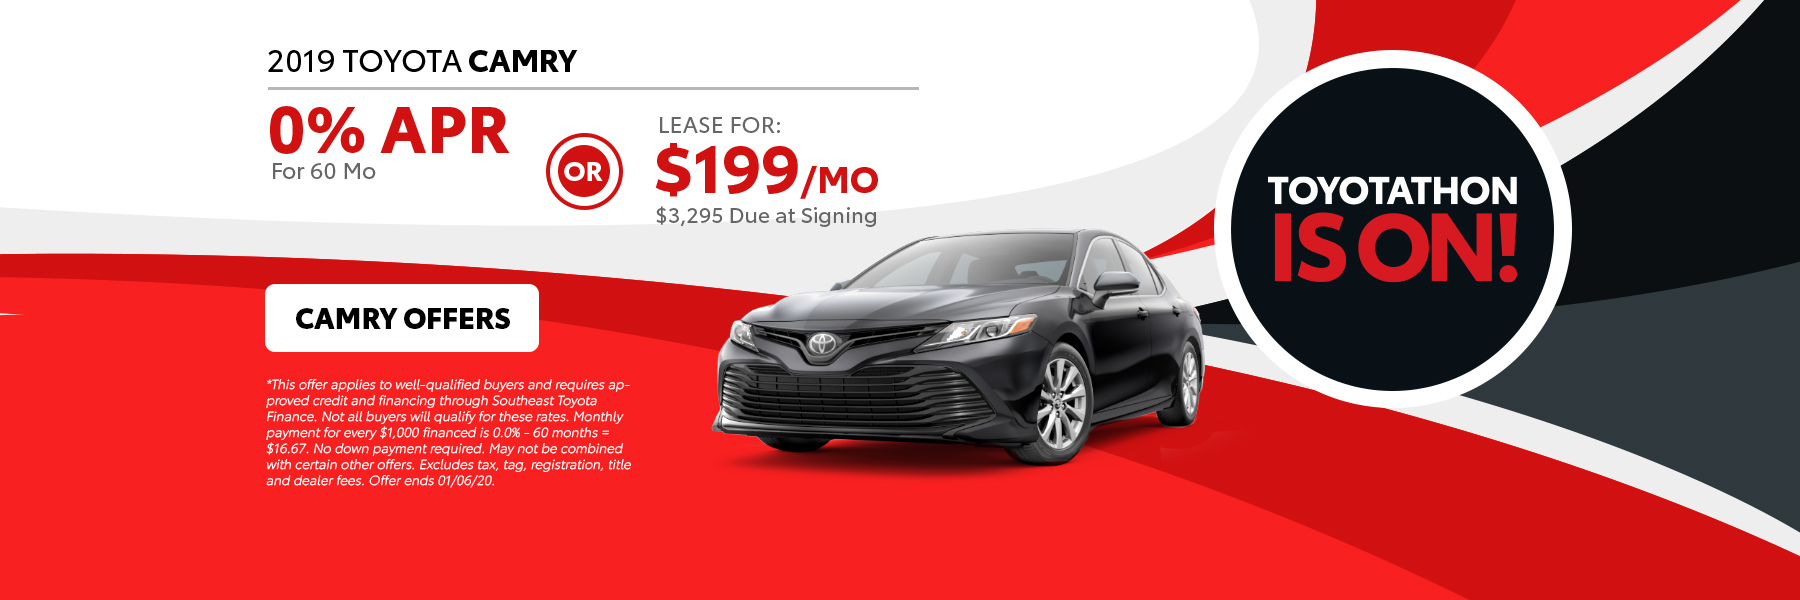 2019 Camry Offers